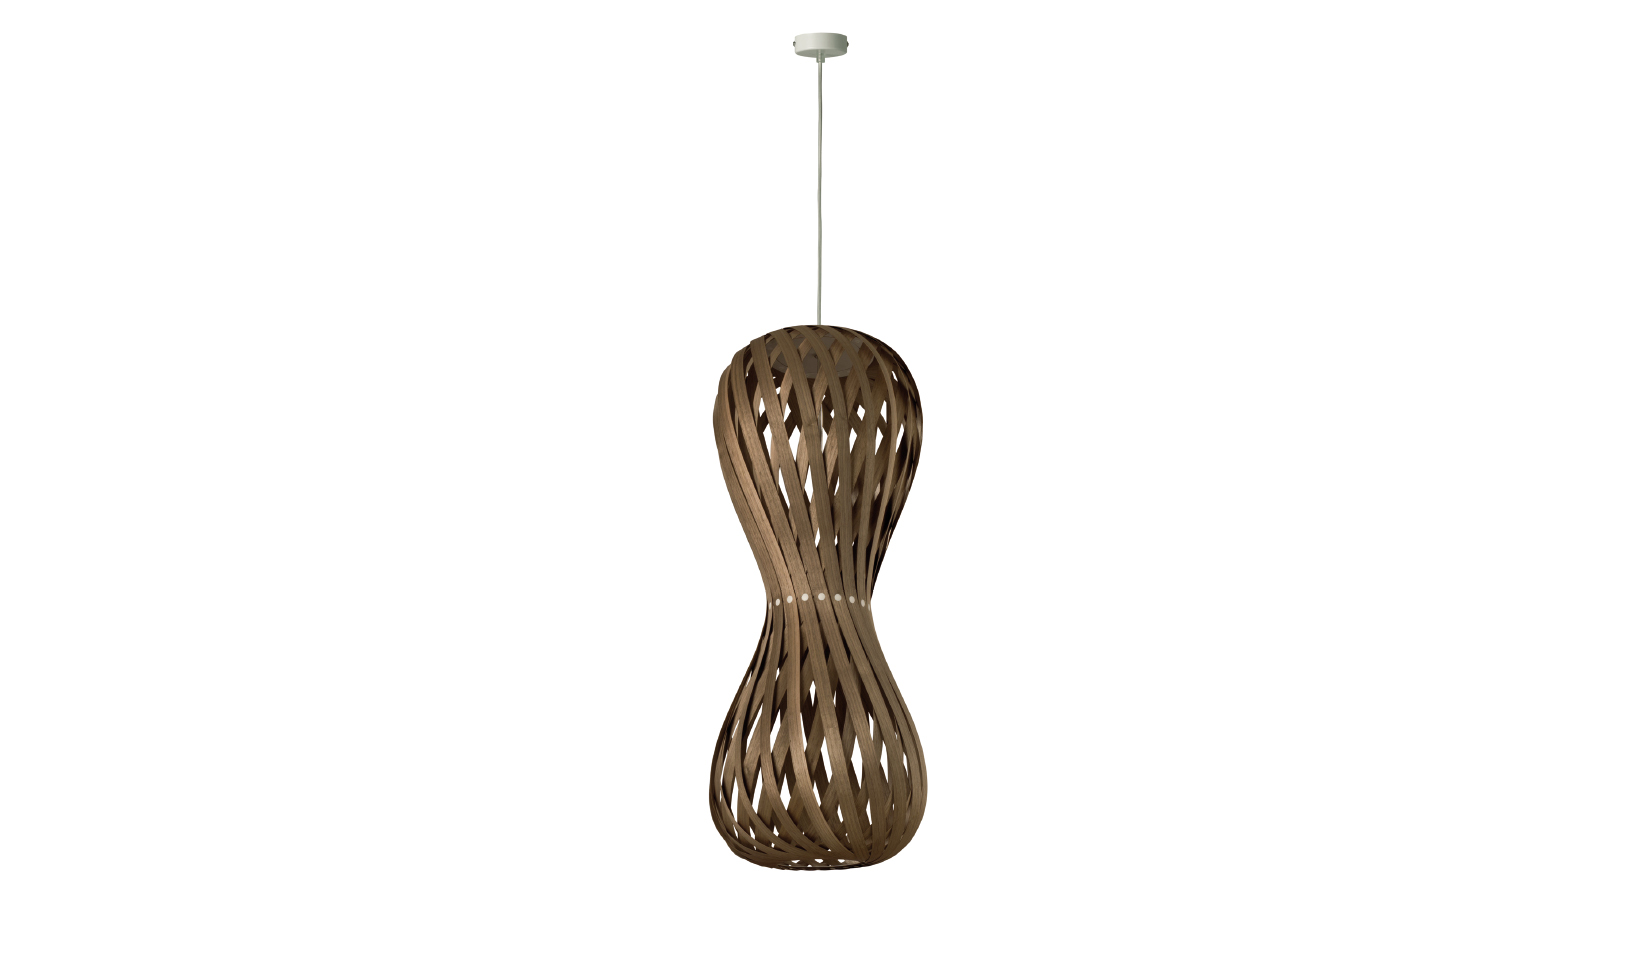 dreizehngrad pendant lamp model Swing 30/70P walnut veneer lamp design lamp